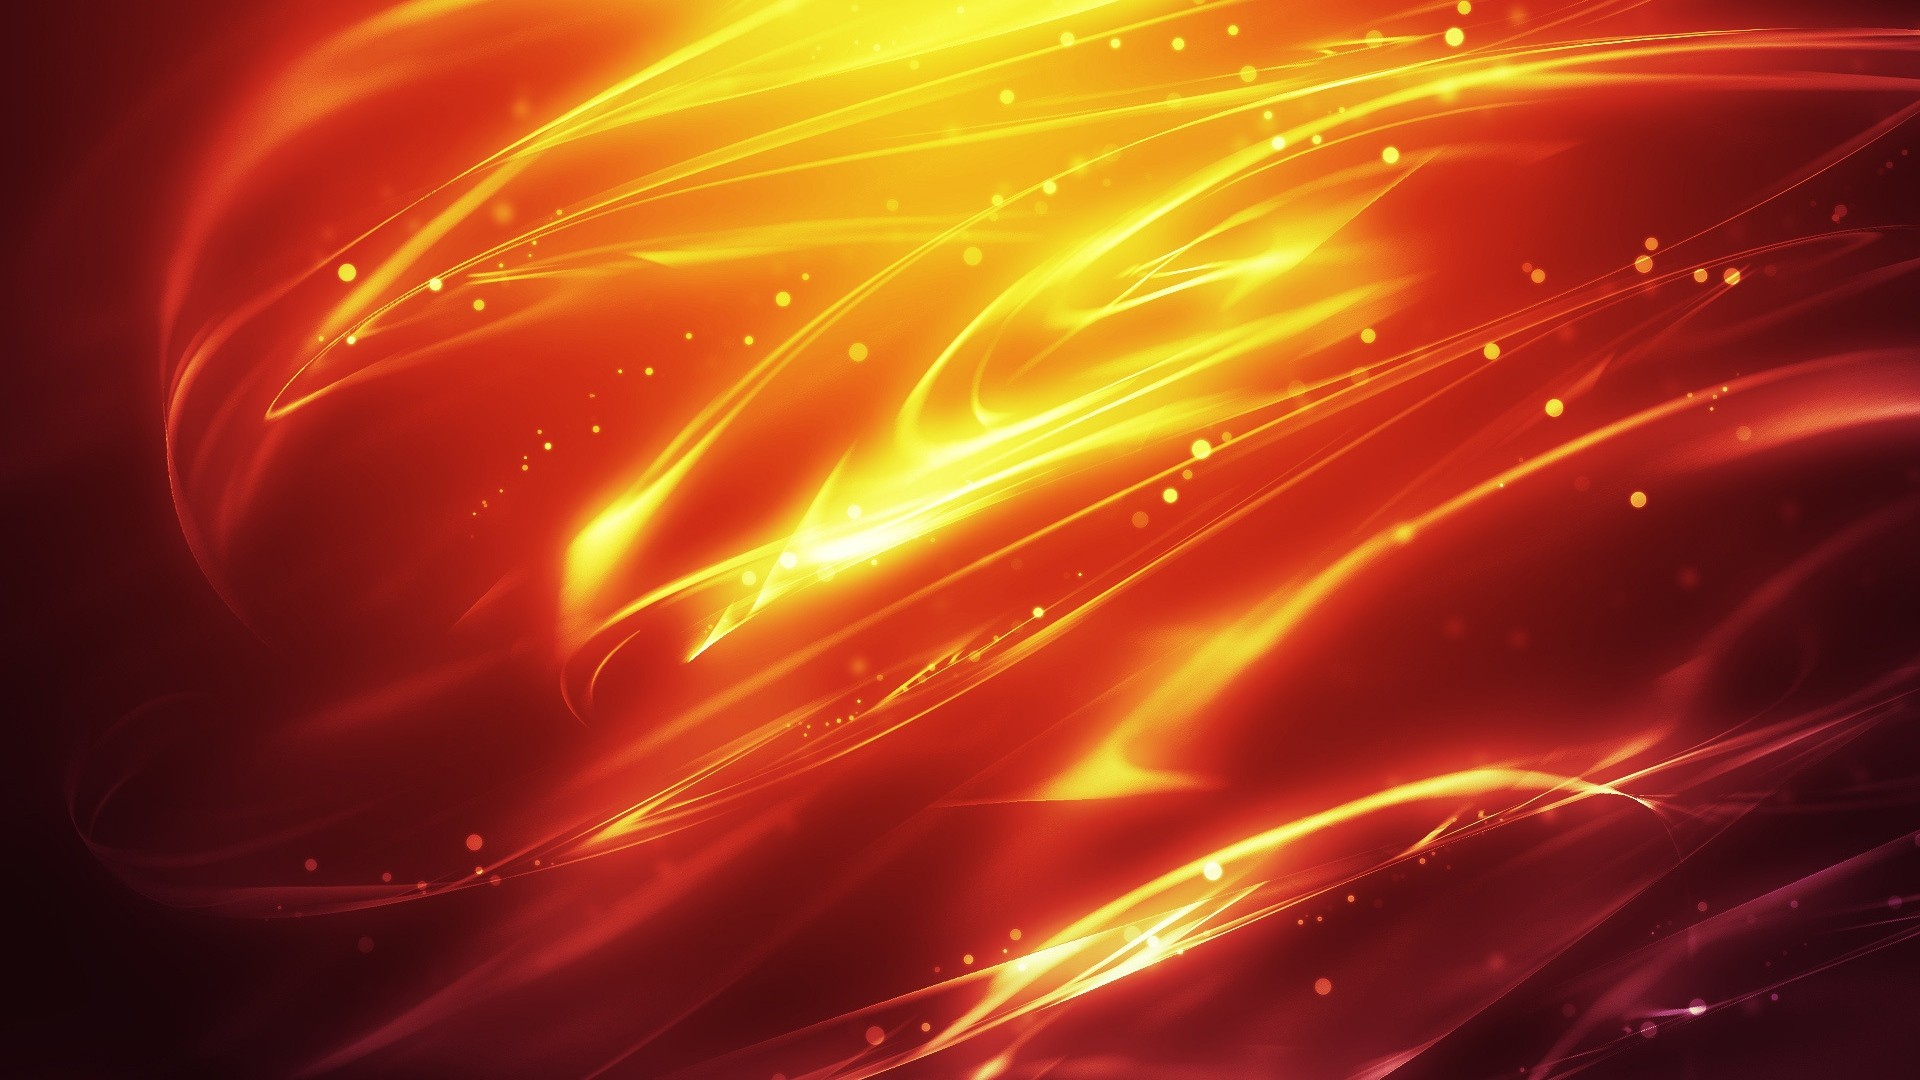 Fire Background Hd Download Free Stunning Hd Wallpapers